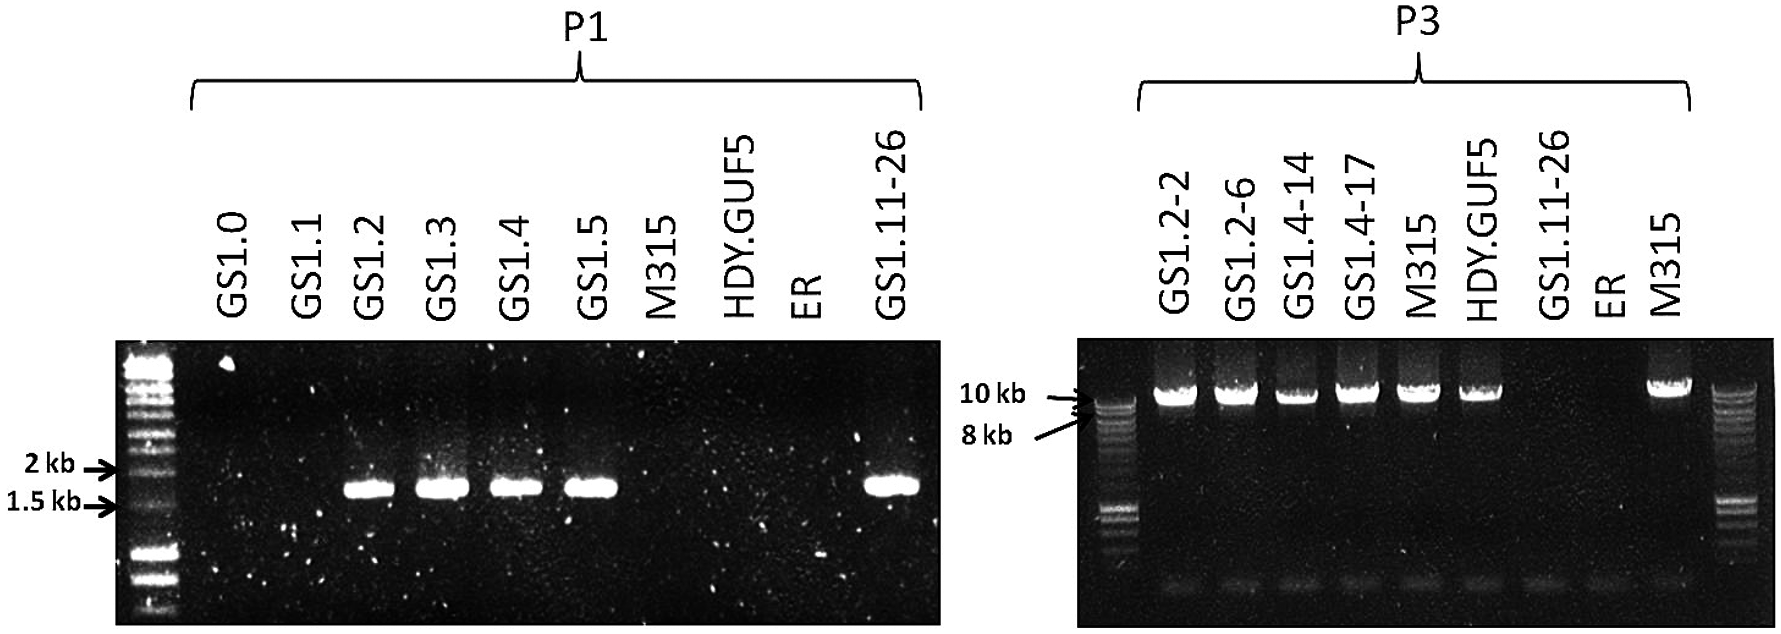 Evaluation of the <i>XylA-</i>locus in cultures and single cell clones obtained from the various stages of the evolutionary adaptation process.